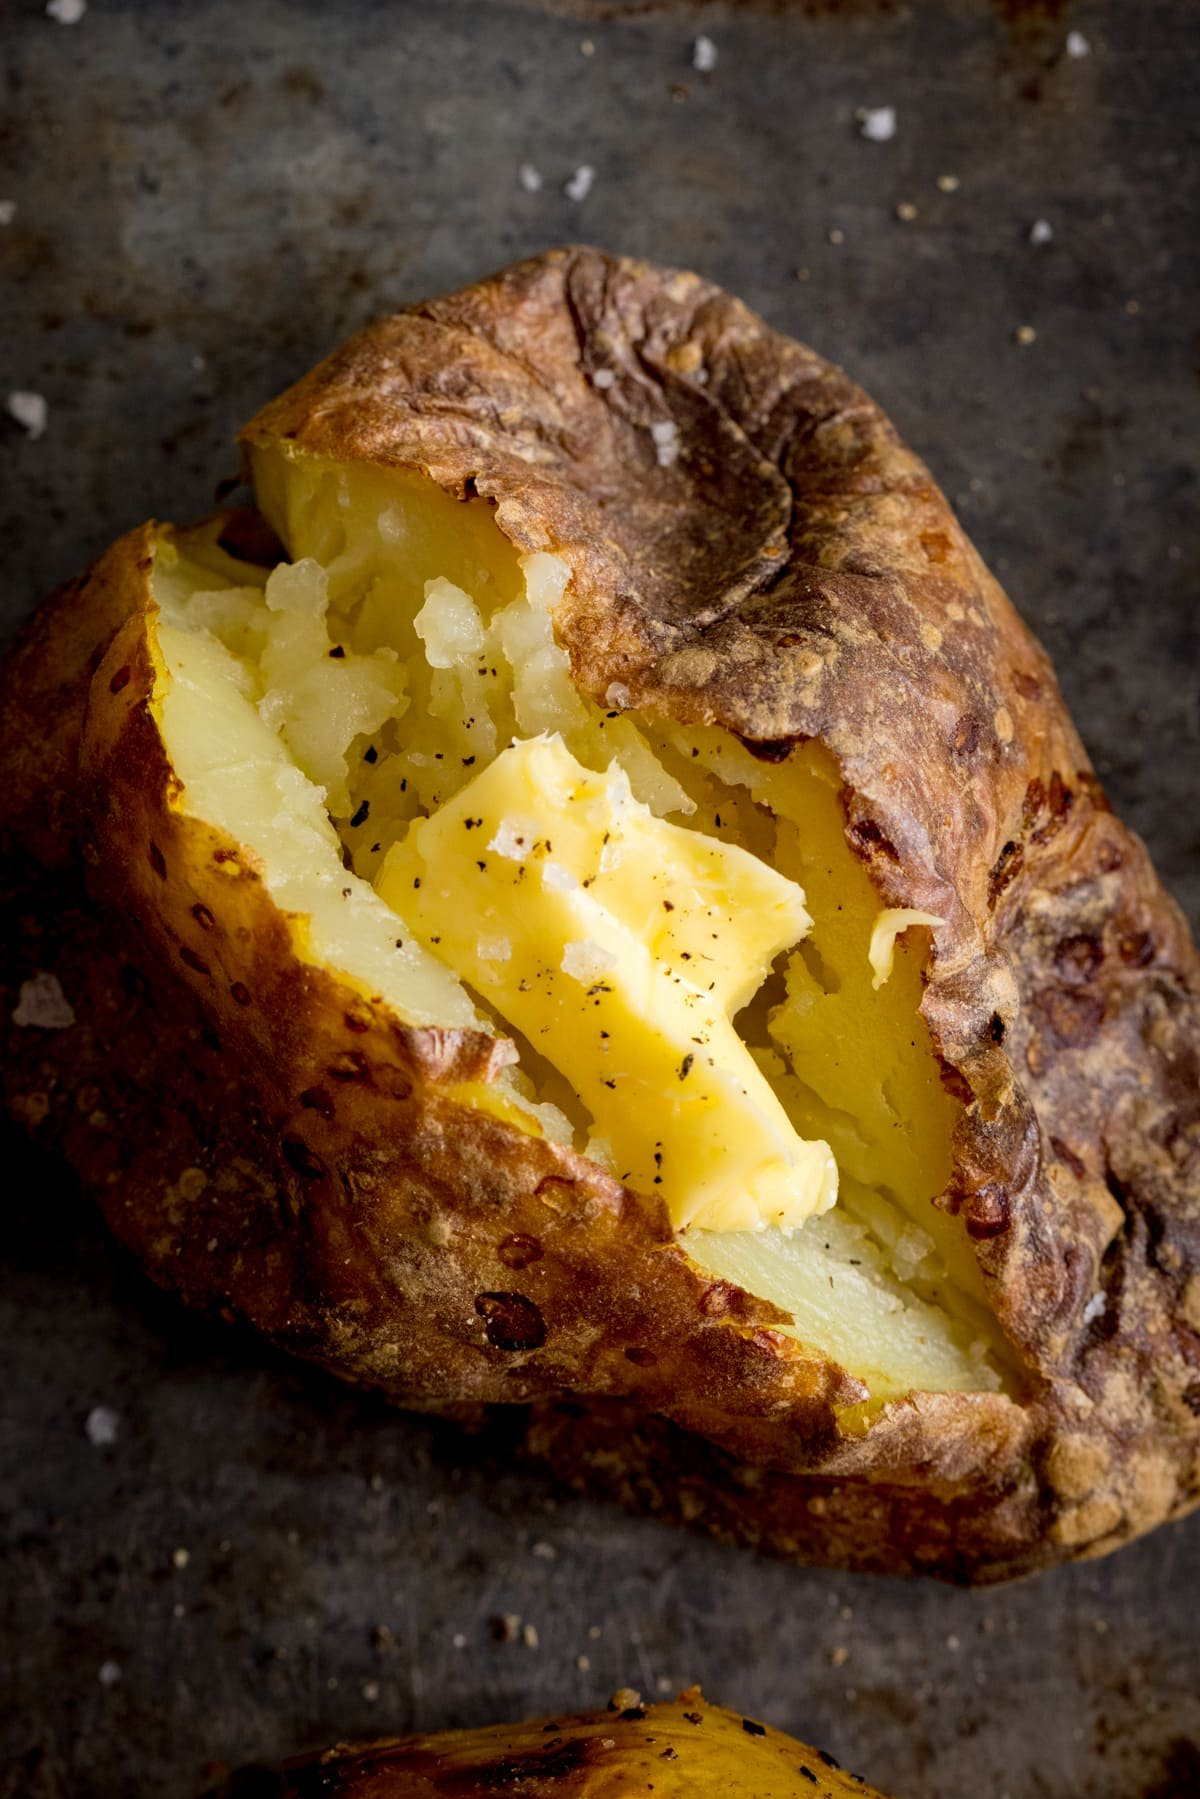 Overhead image of an open baked potato on a dark metal background. Potato was baked using method 7 of my baked potato experiment.